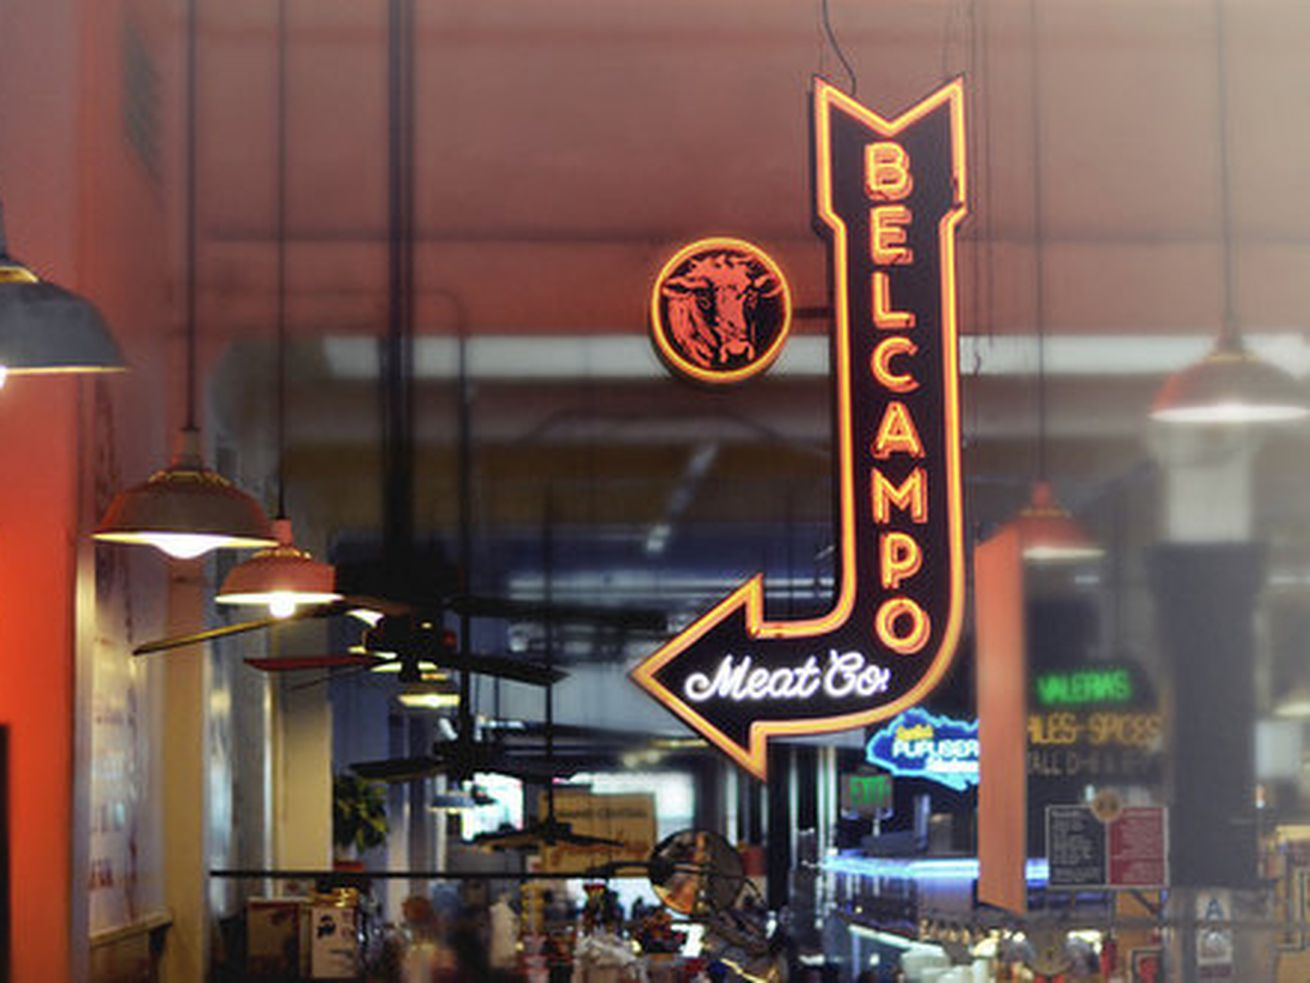 Belcampo Meat Co, sign at Grand Central Market